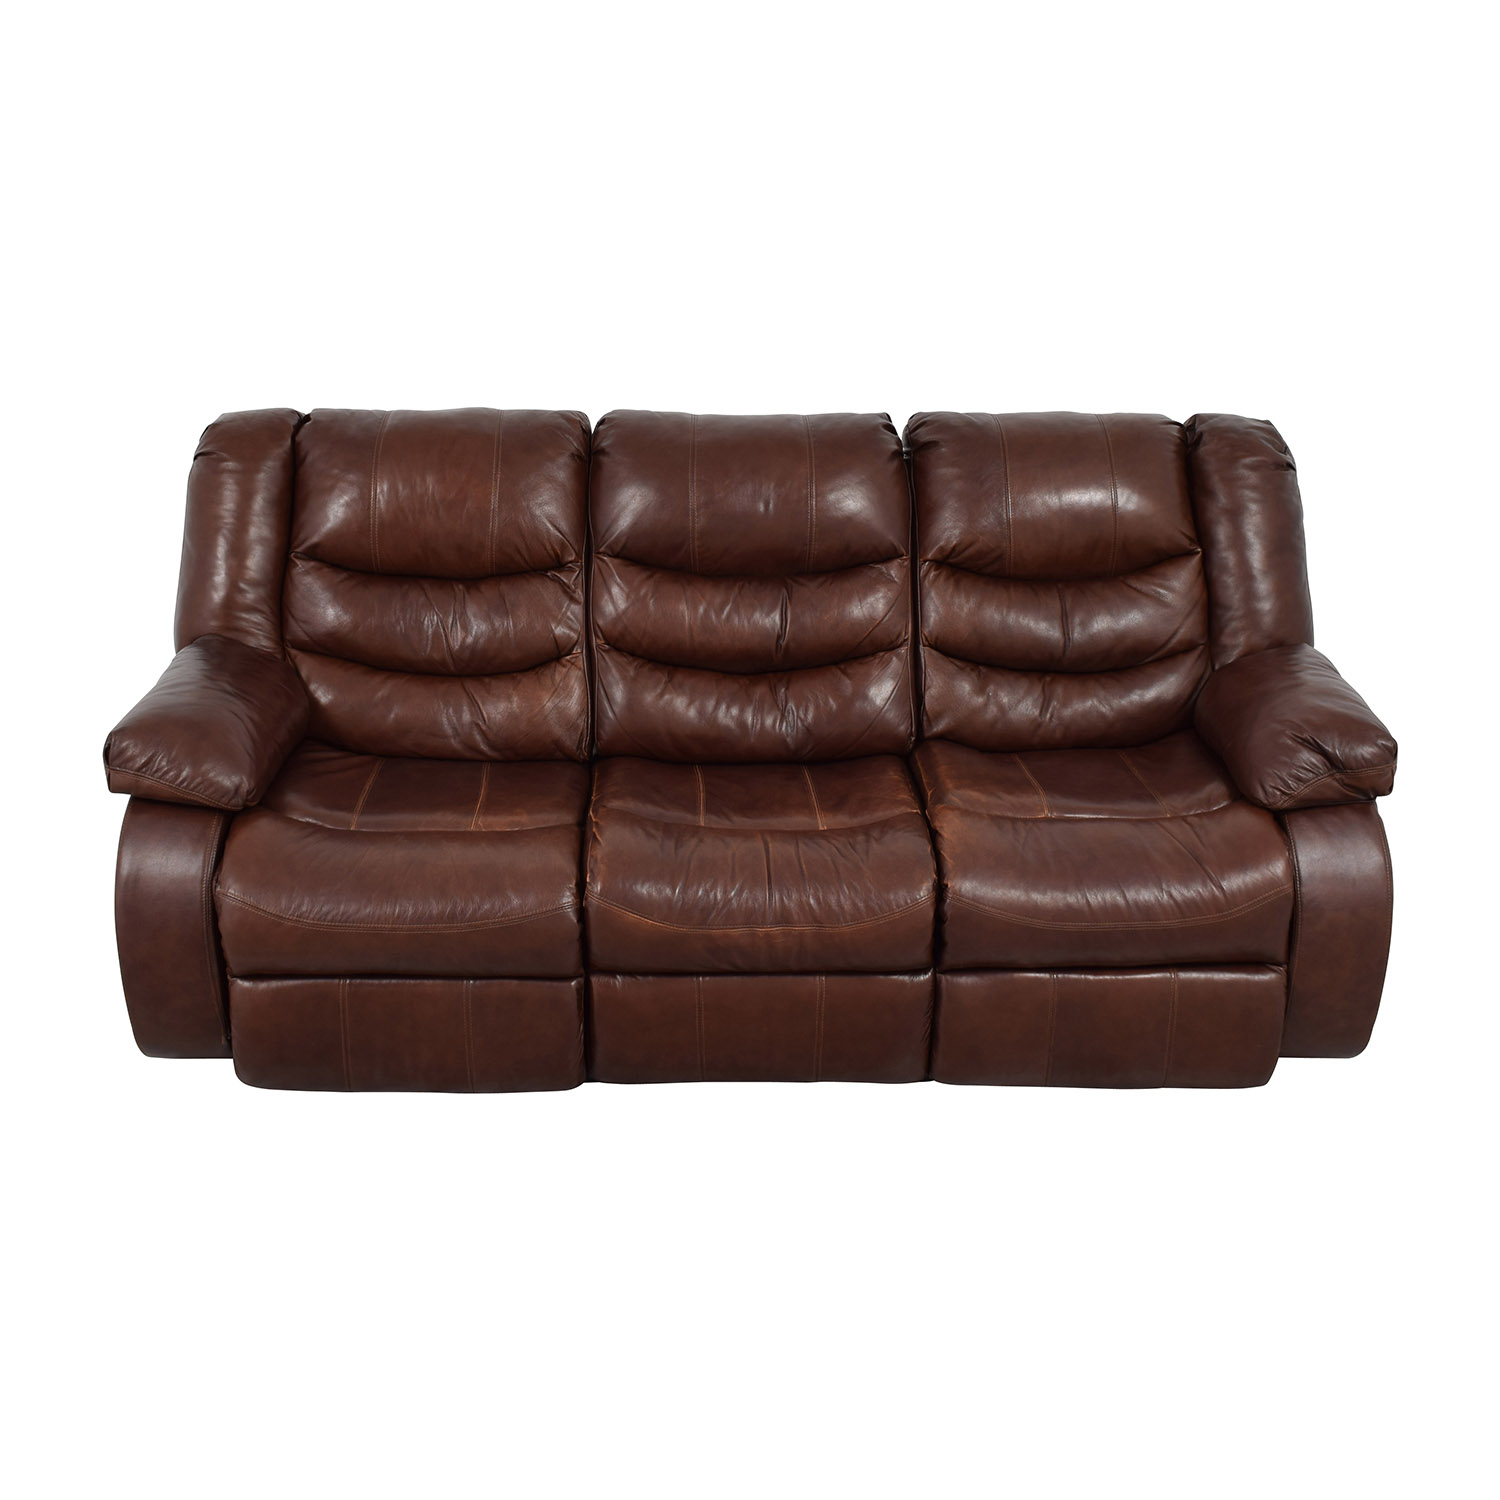 Ashleys Furniture Ashley Furniture Large Brown Leather Reclining Couch Classic Sofas